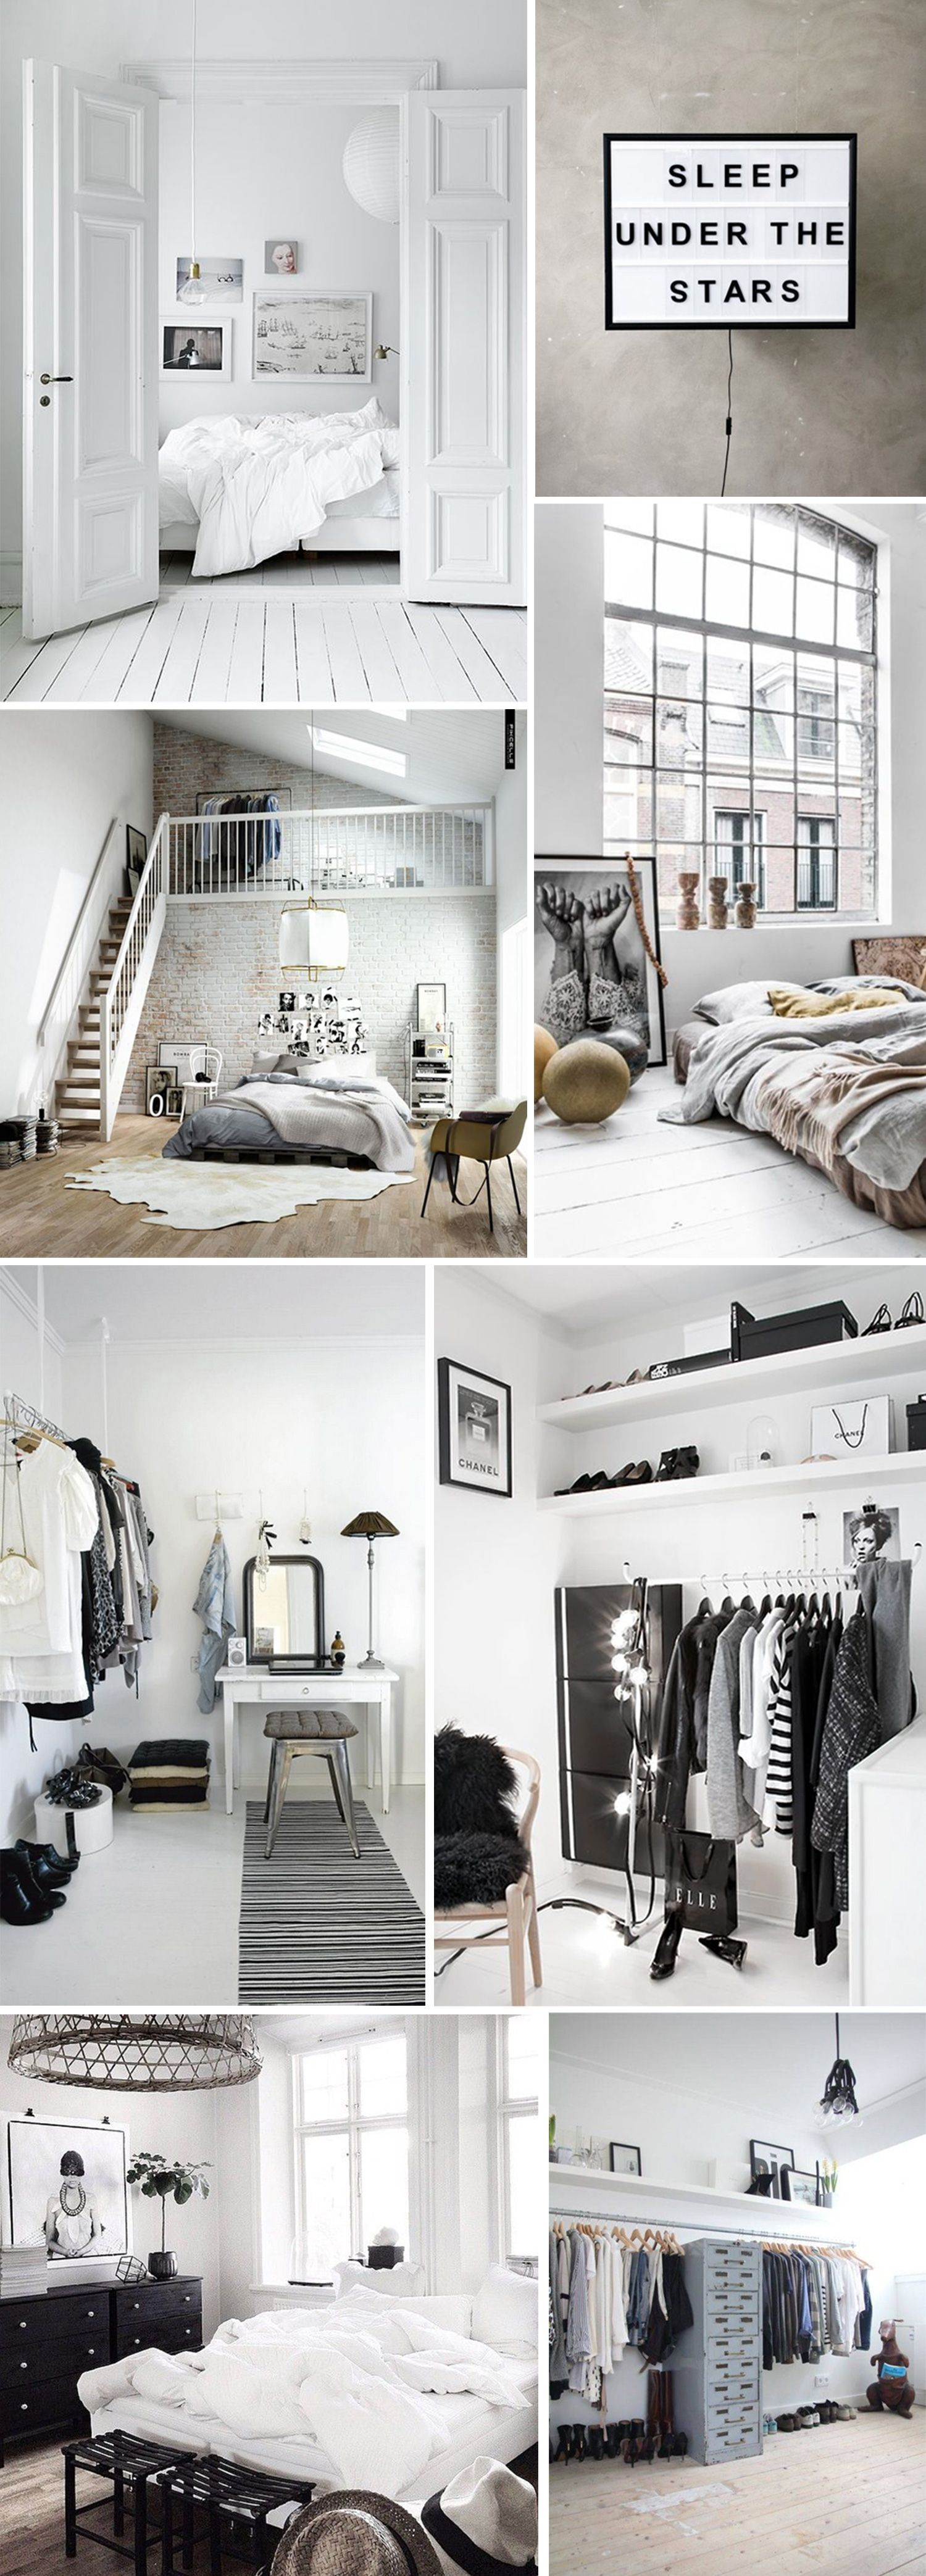 Bedroom inspiration (Christina Dueholm) - Slaapkamer, Interieur en ...